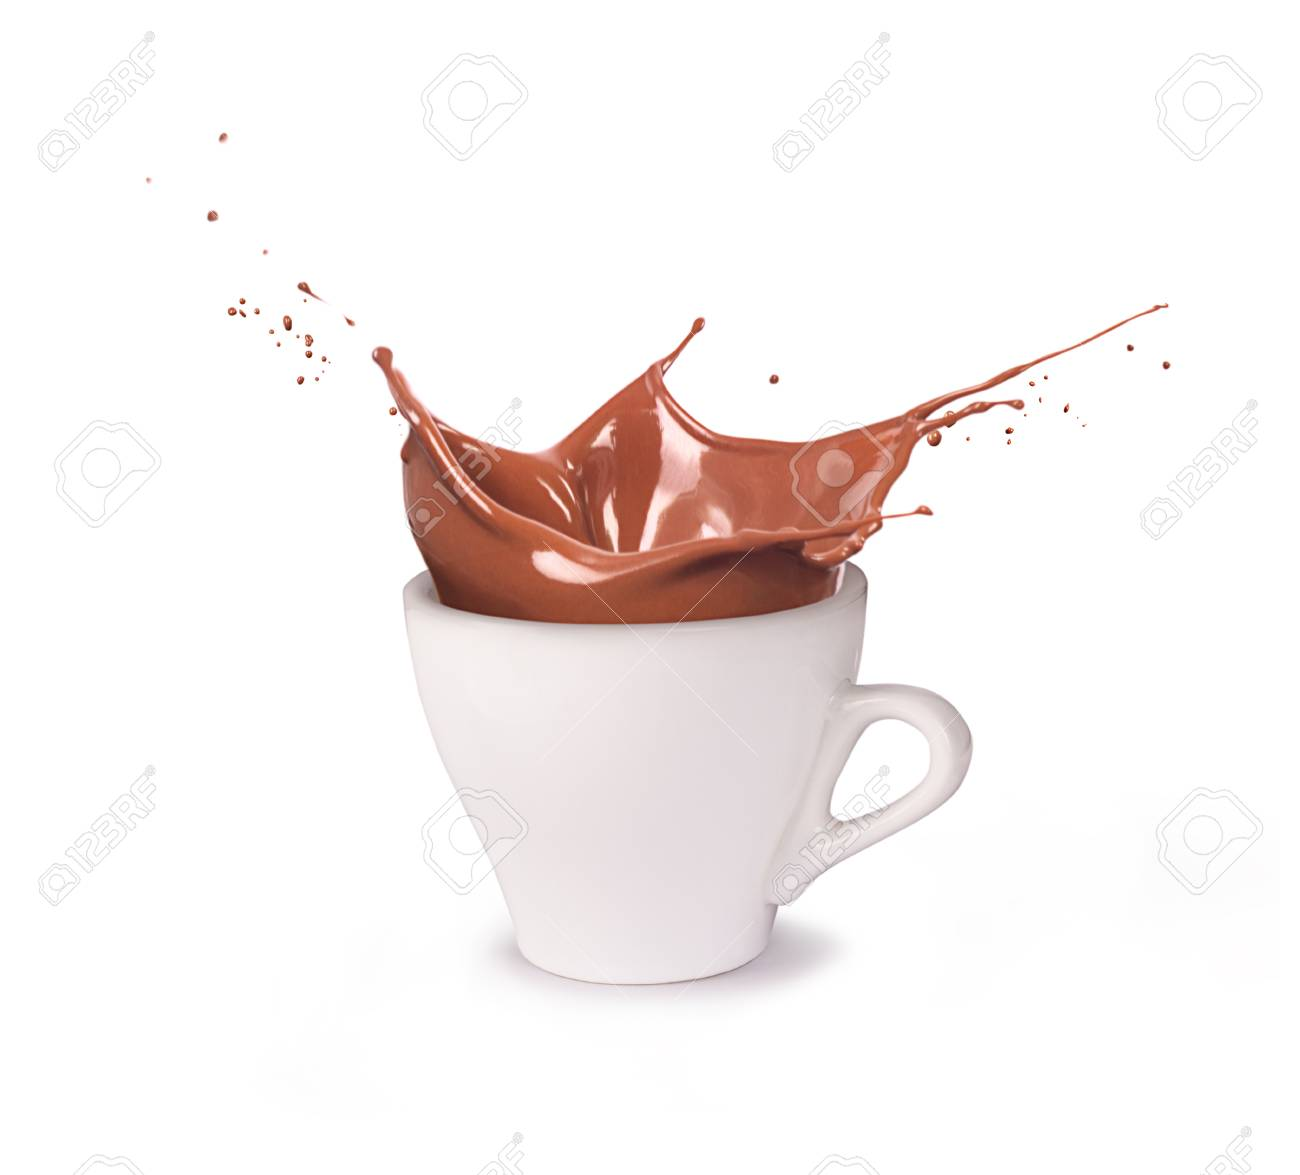 A cup of chocolate - 87756454